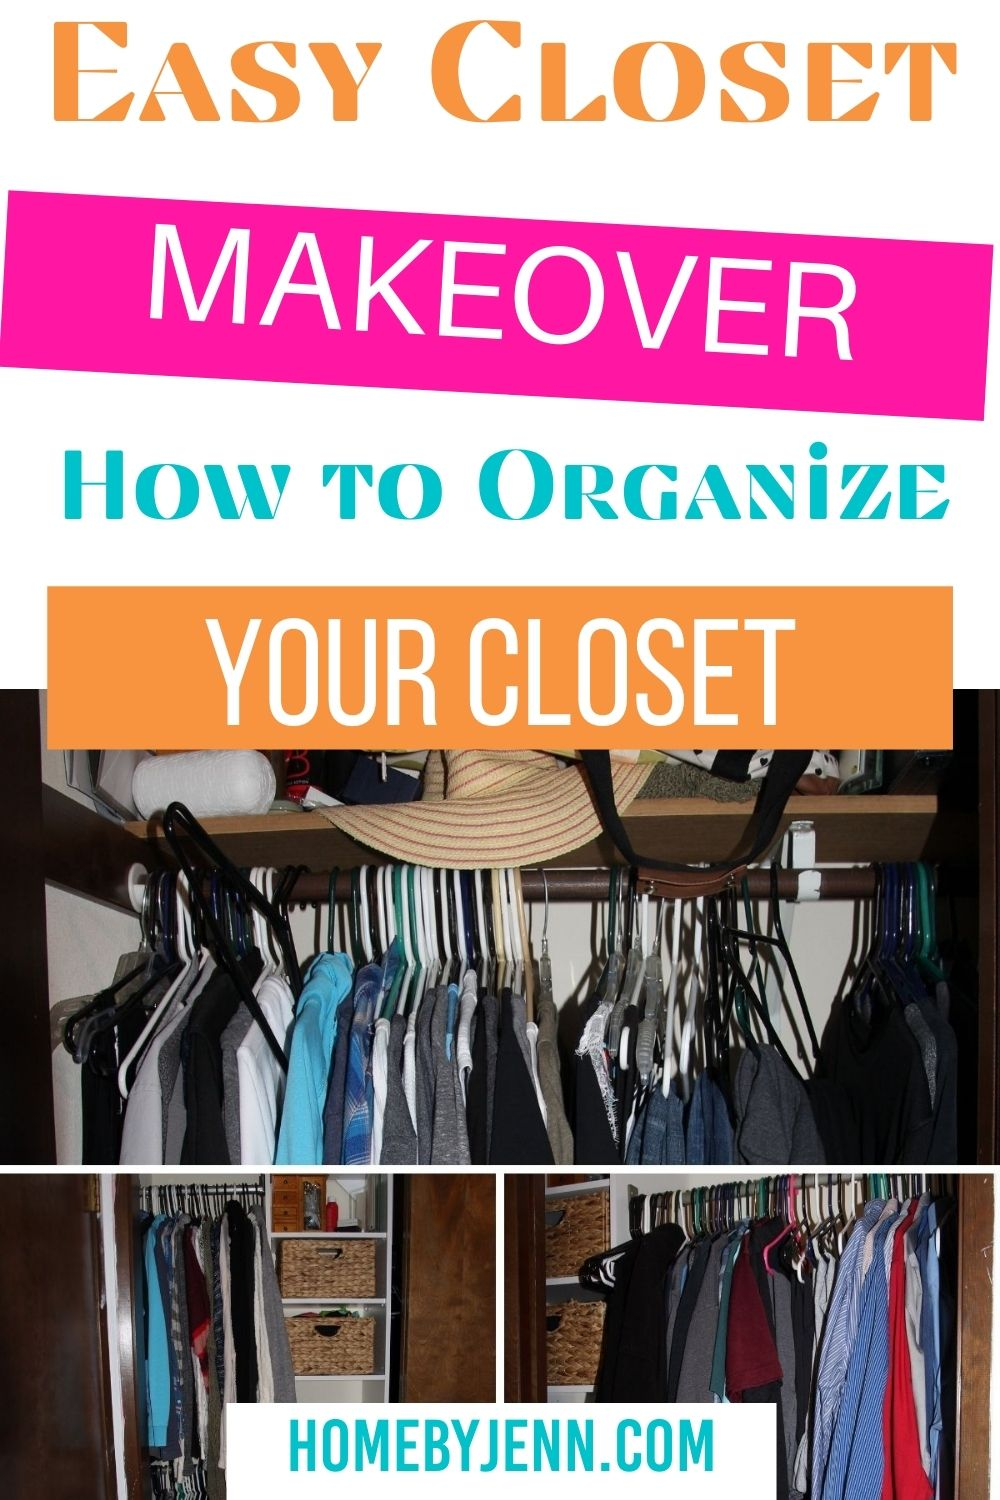 Making over your closet will help you keep your closet organized. Learn how to organize your closet by following these simple steps. If you're looking from going to a 1 rod closet to using a closet organizer you'll love this transformation. via @homebyjenn